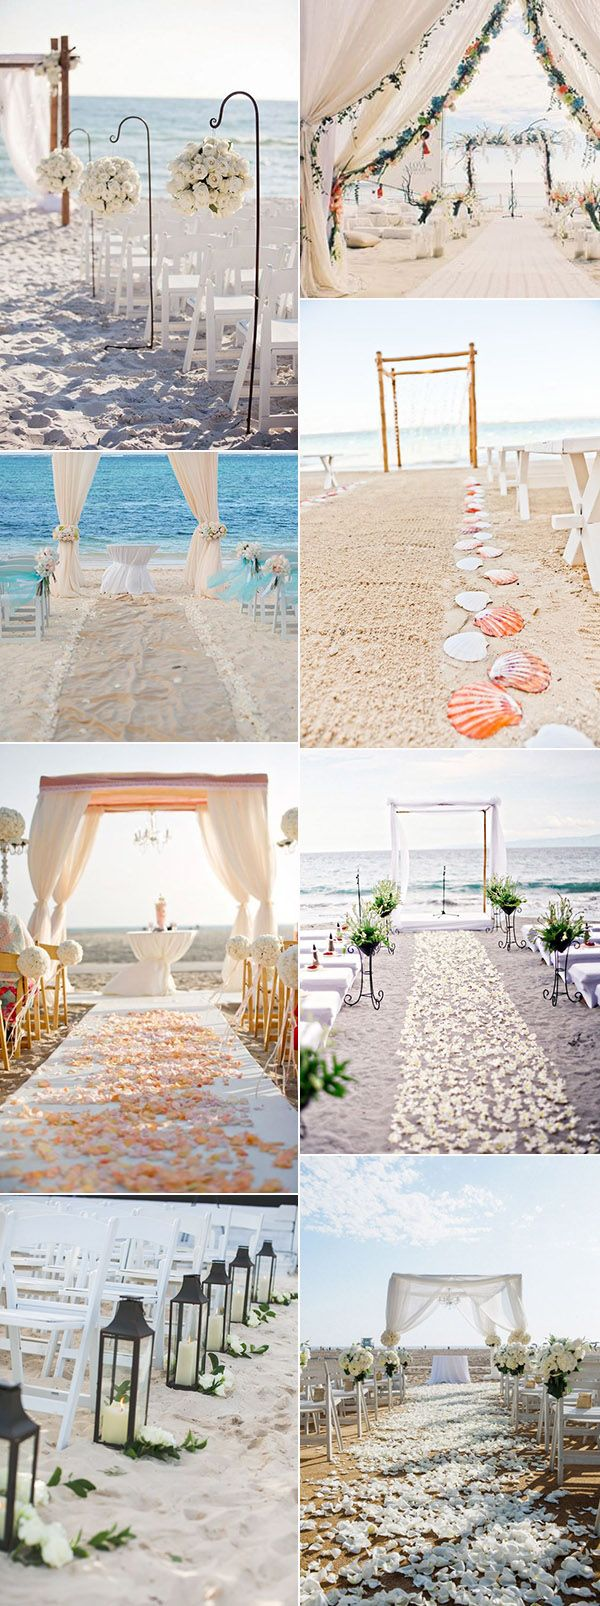 ideas for beach wedding party favors%0A    Brilliant Beach Wedding Ideas for      trends